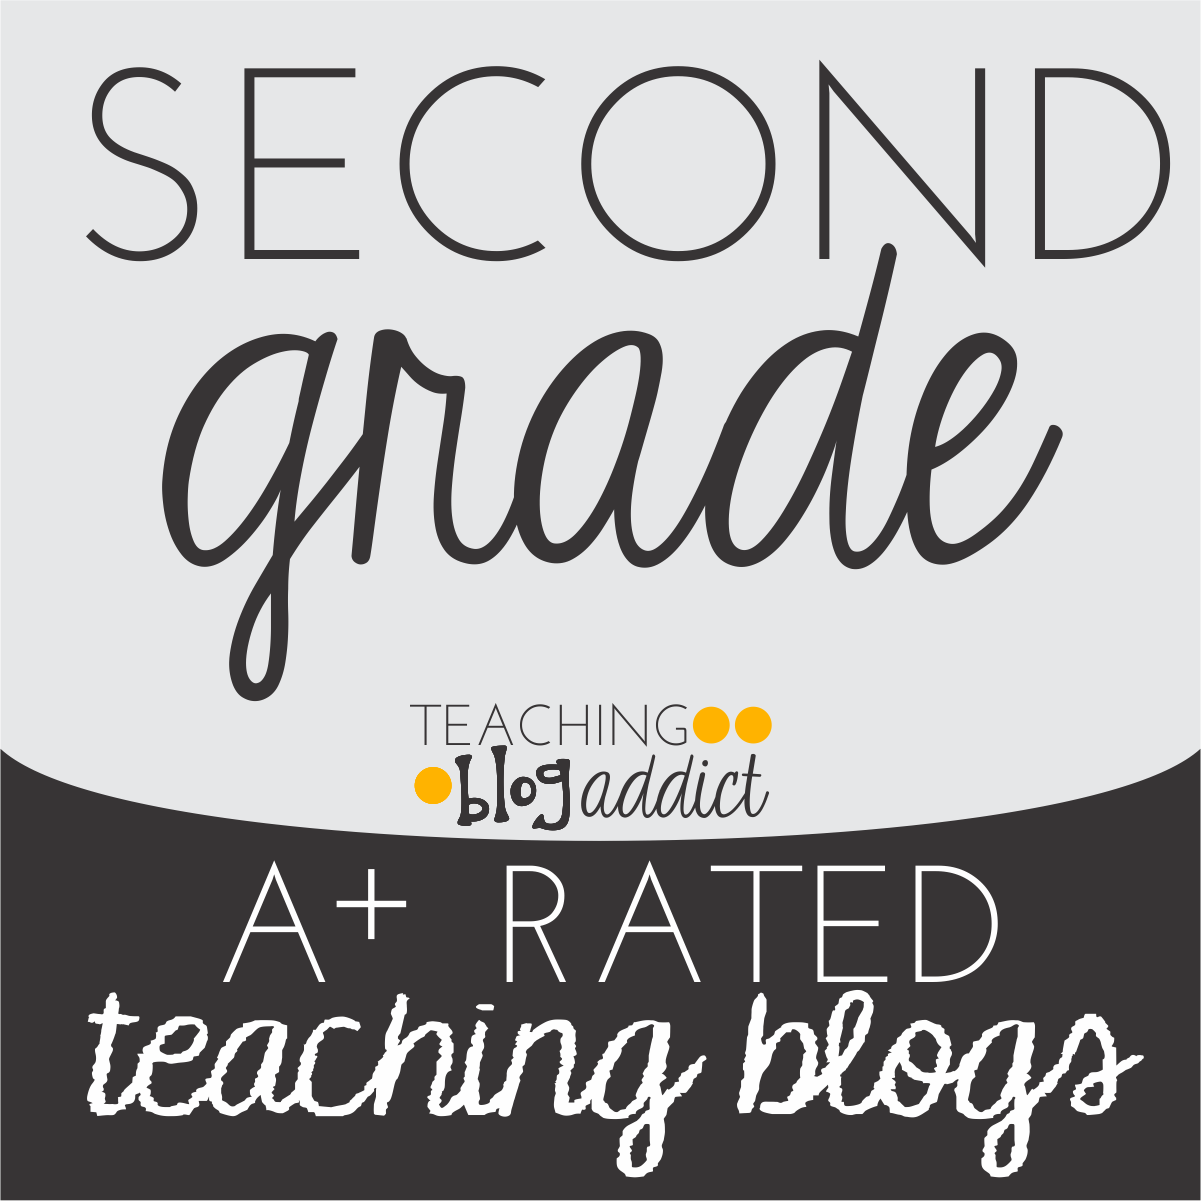 worksheet 2nd Grade teaching blog addict 2nd grade blogs if you are here to find some new second tips enjoy hopping with the best below